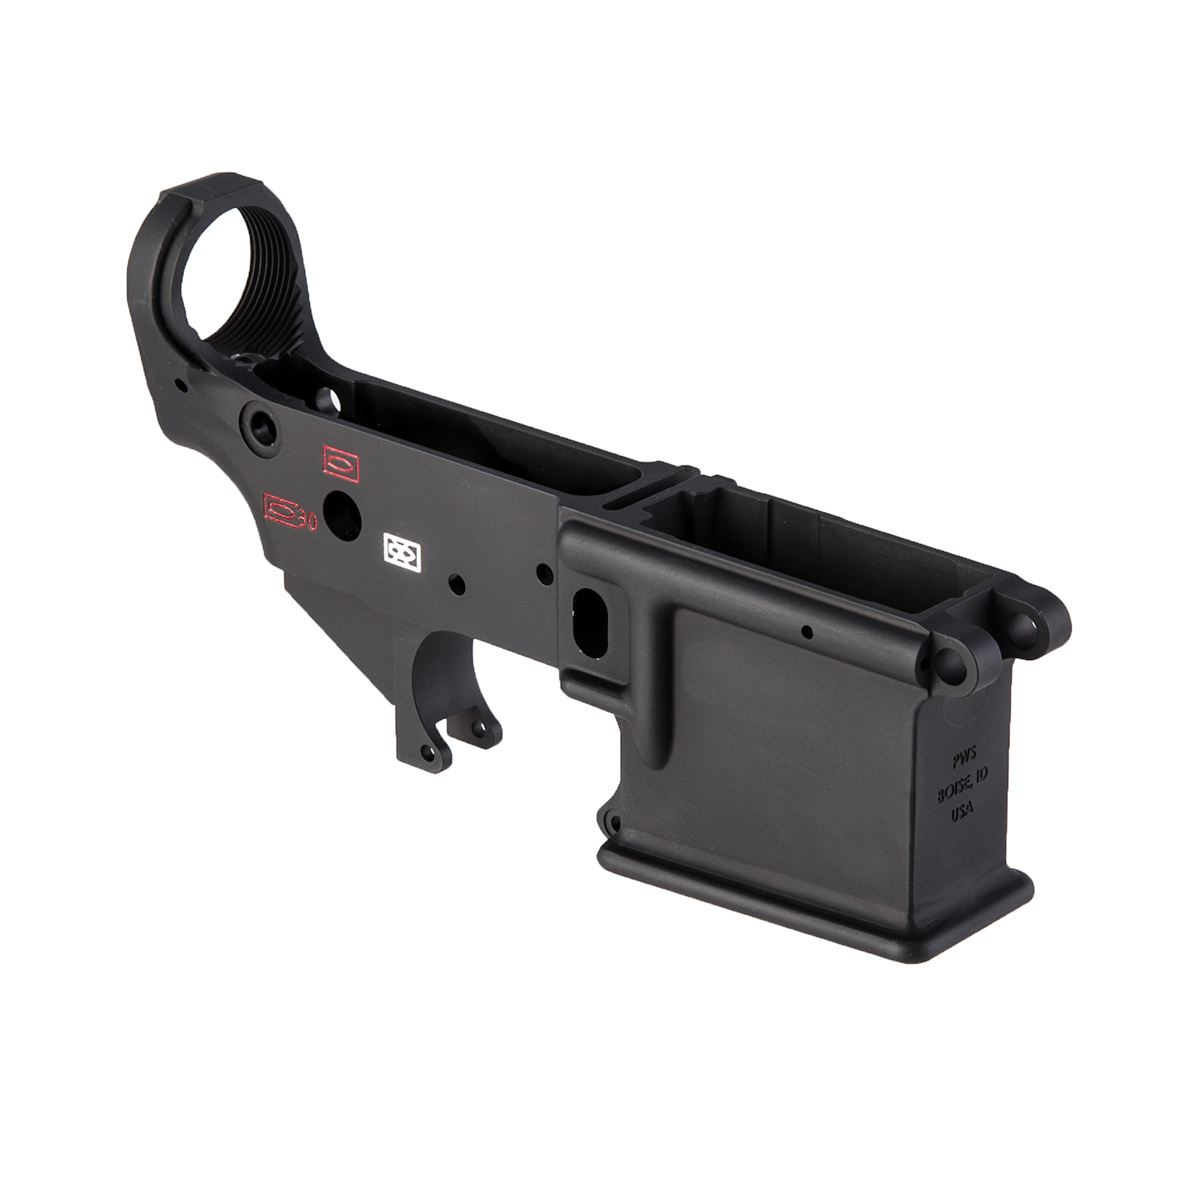 BRN-4: Brownells' HK416 Clone Lower And Parts Coming This